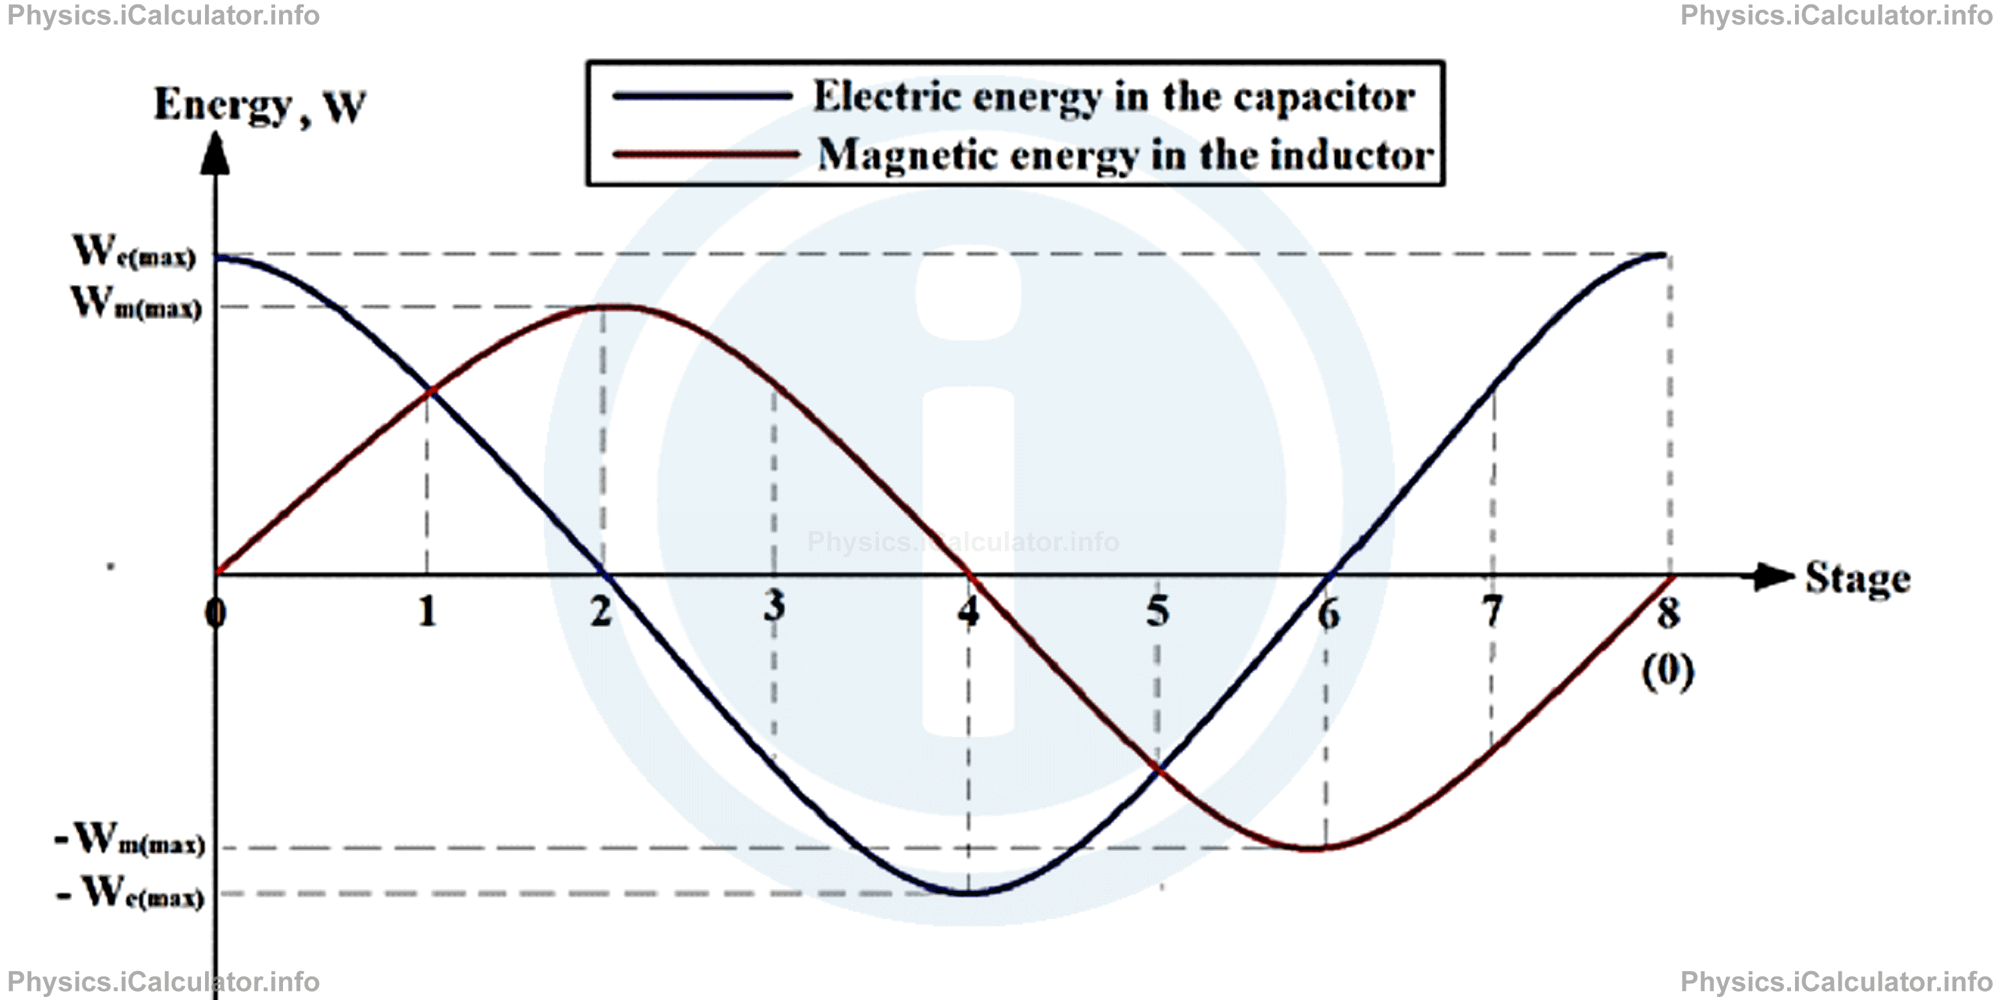 Physics Tutorials: This image provides visual information for the physics tutorial Alternating Current. LC Circuits